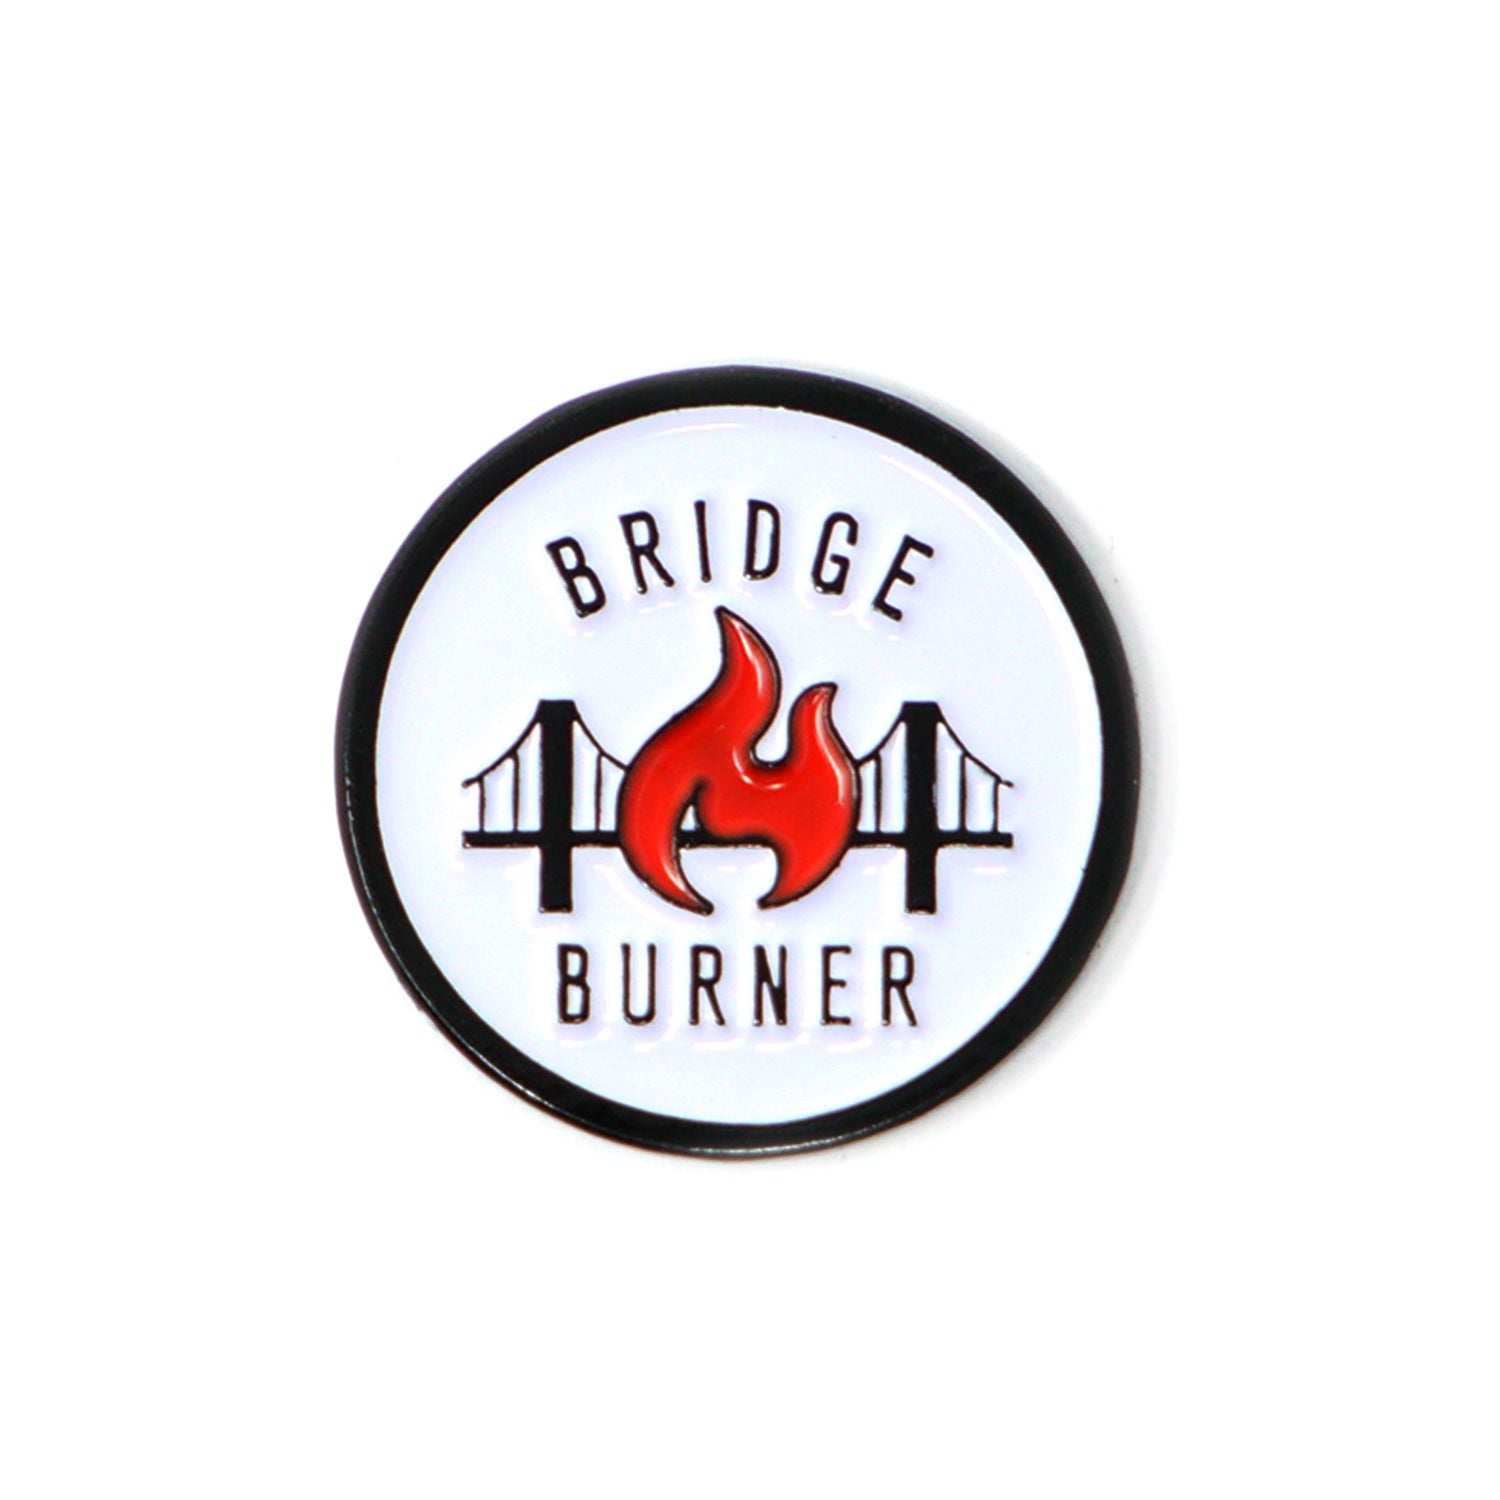 Bridge Burner by Brian Ewing